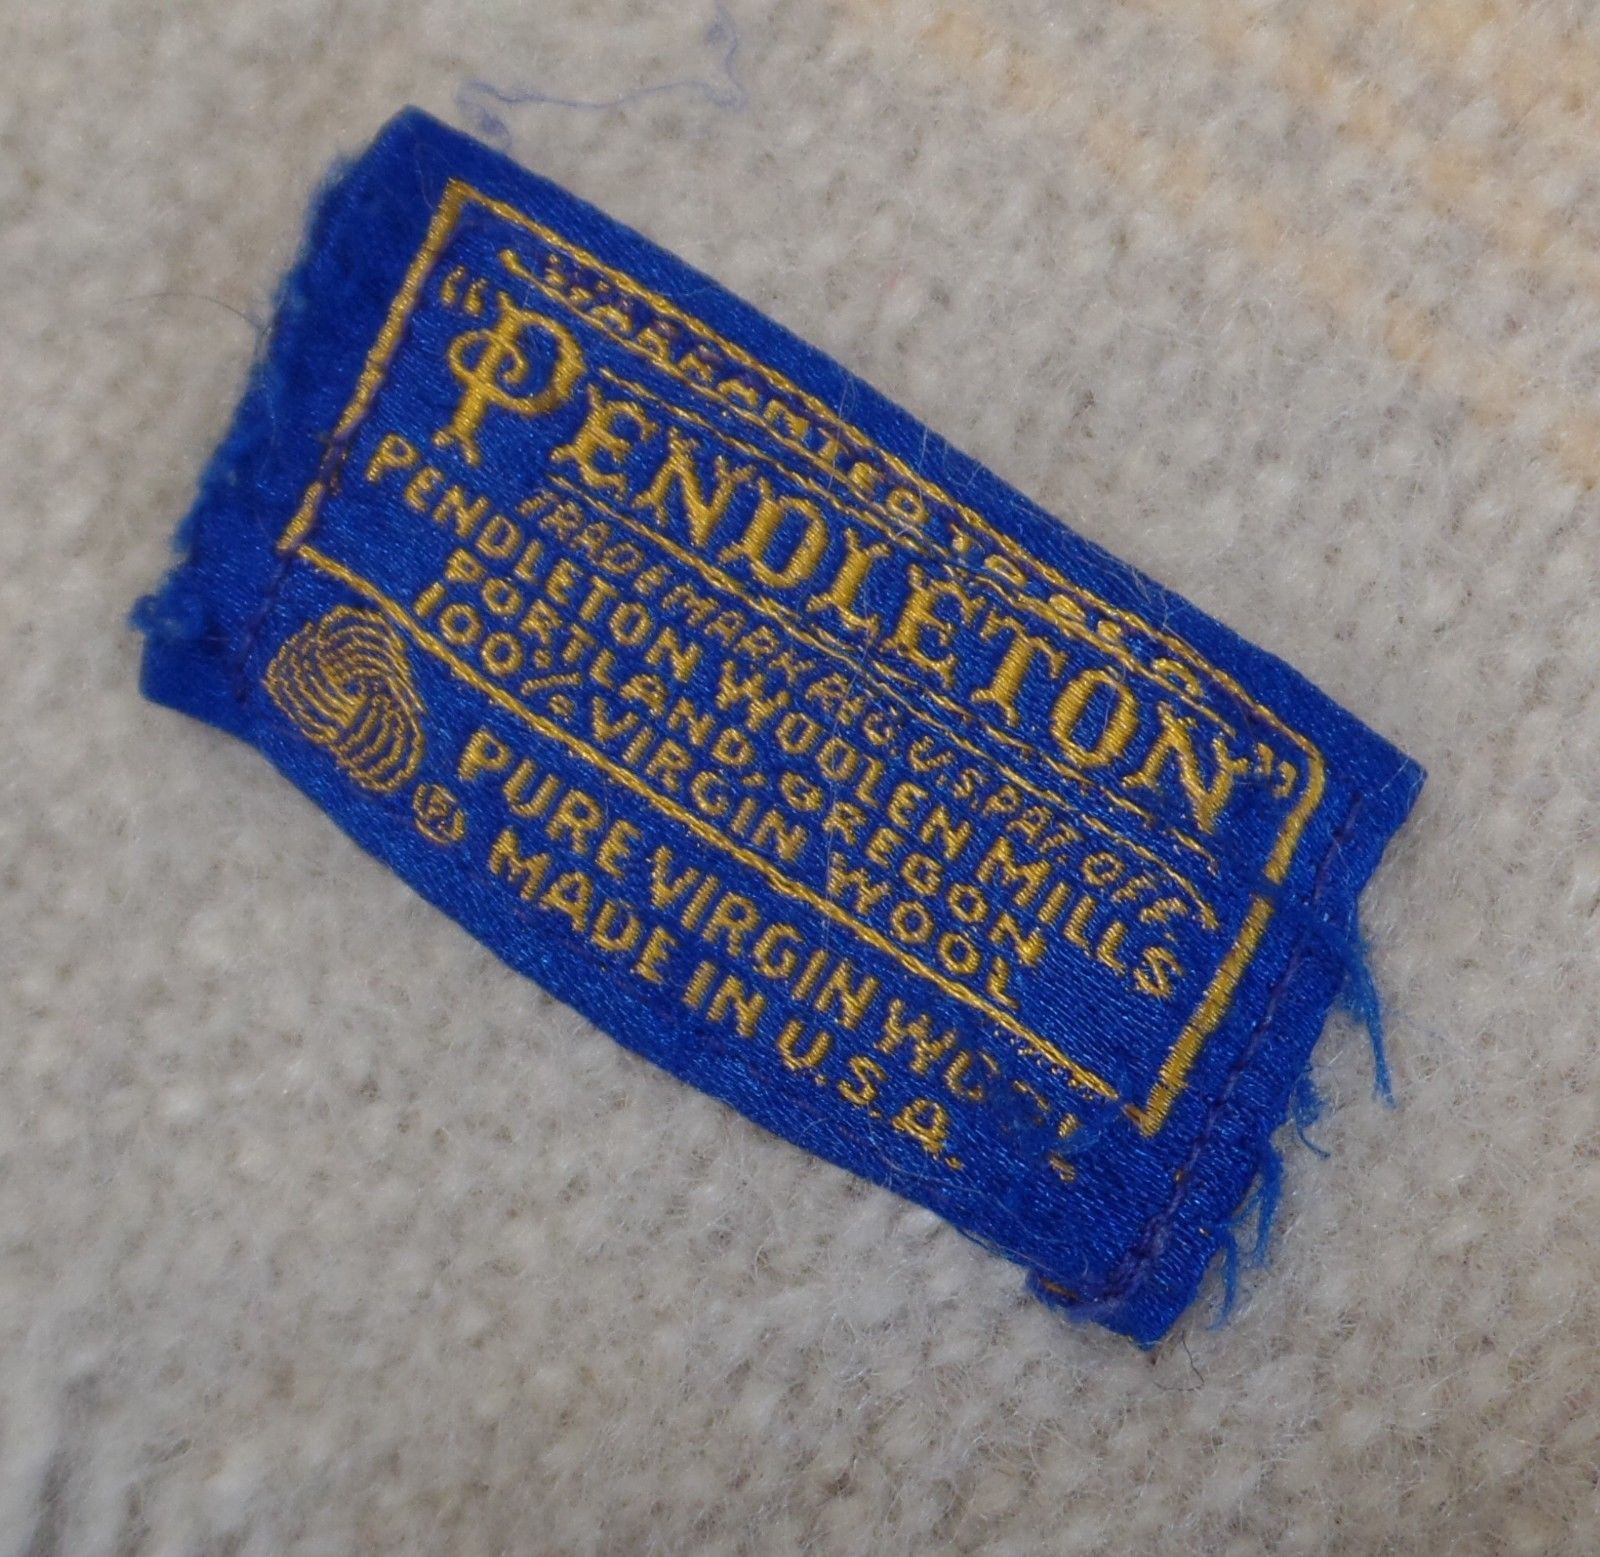 A closeup of the Pendleton blue and gold embroidered label on the 1960s Zion National Park throw.